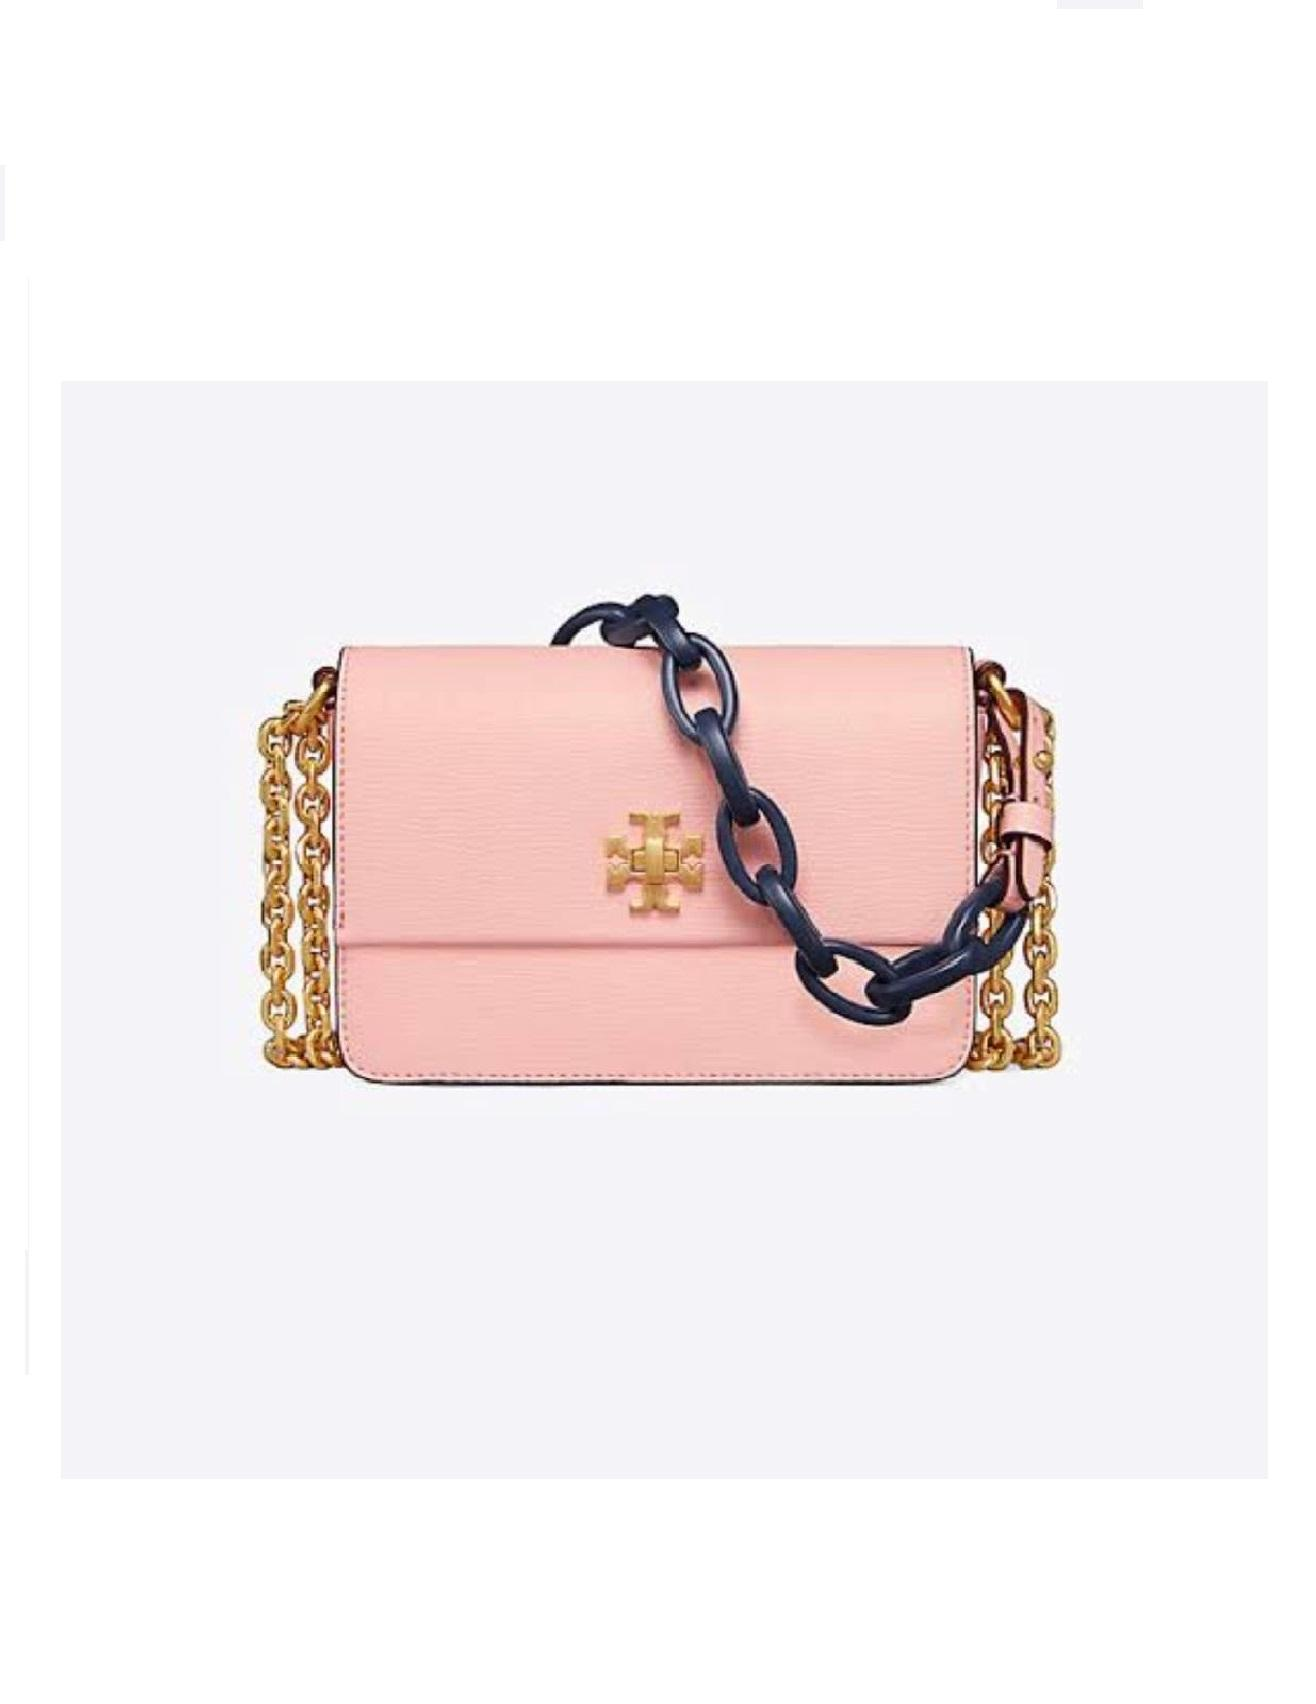 f2f58fae8e01 YFB Tory Burch Crossbody Shoulder Bag For Women - Baby Pink